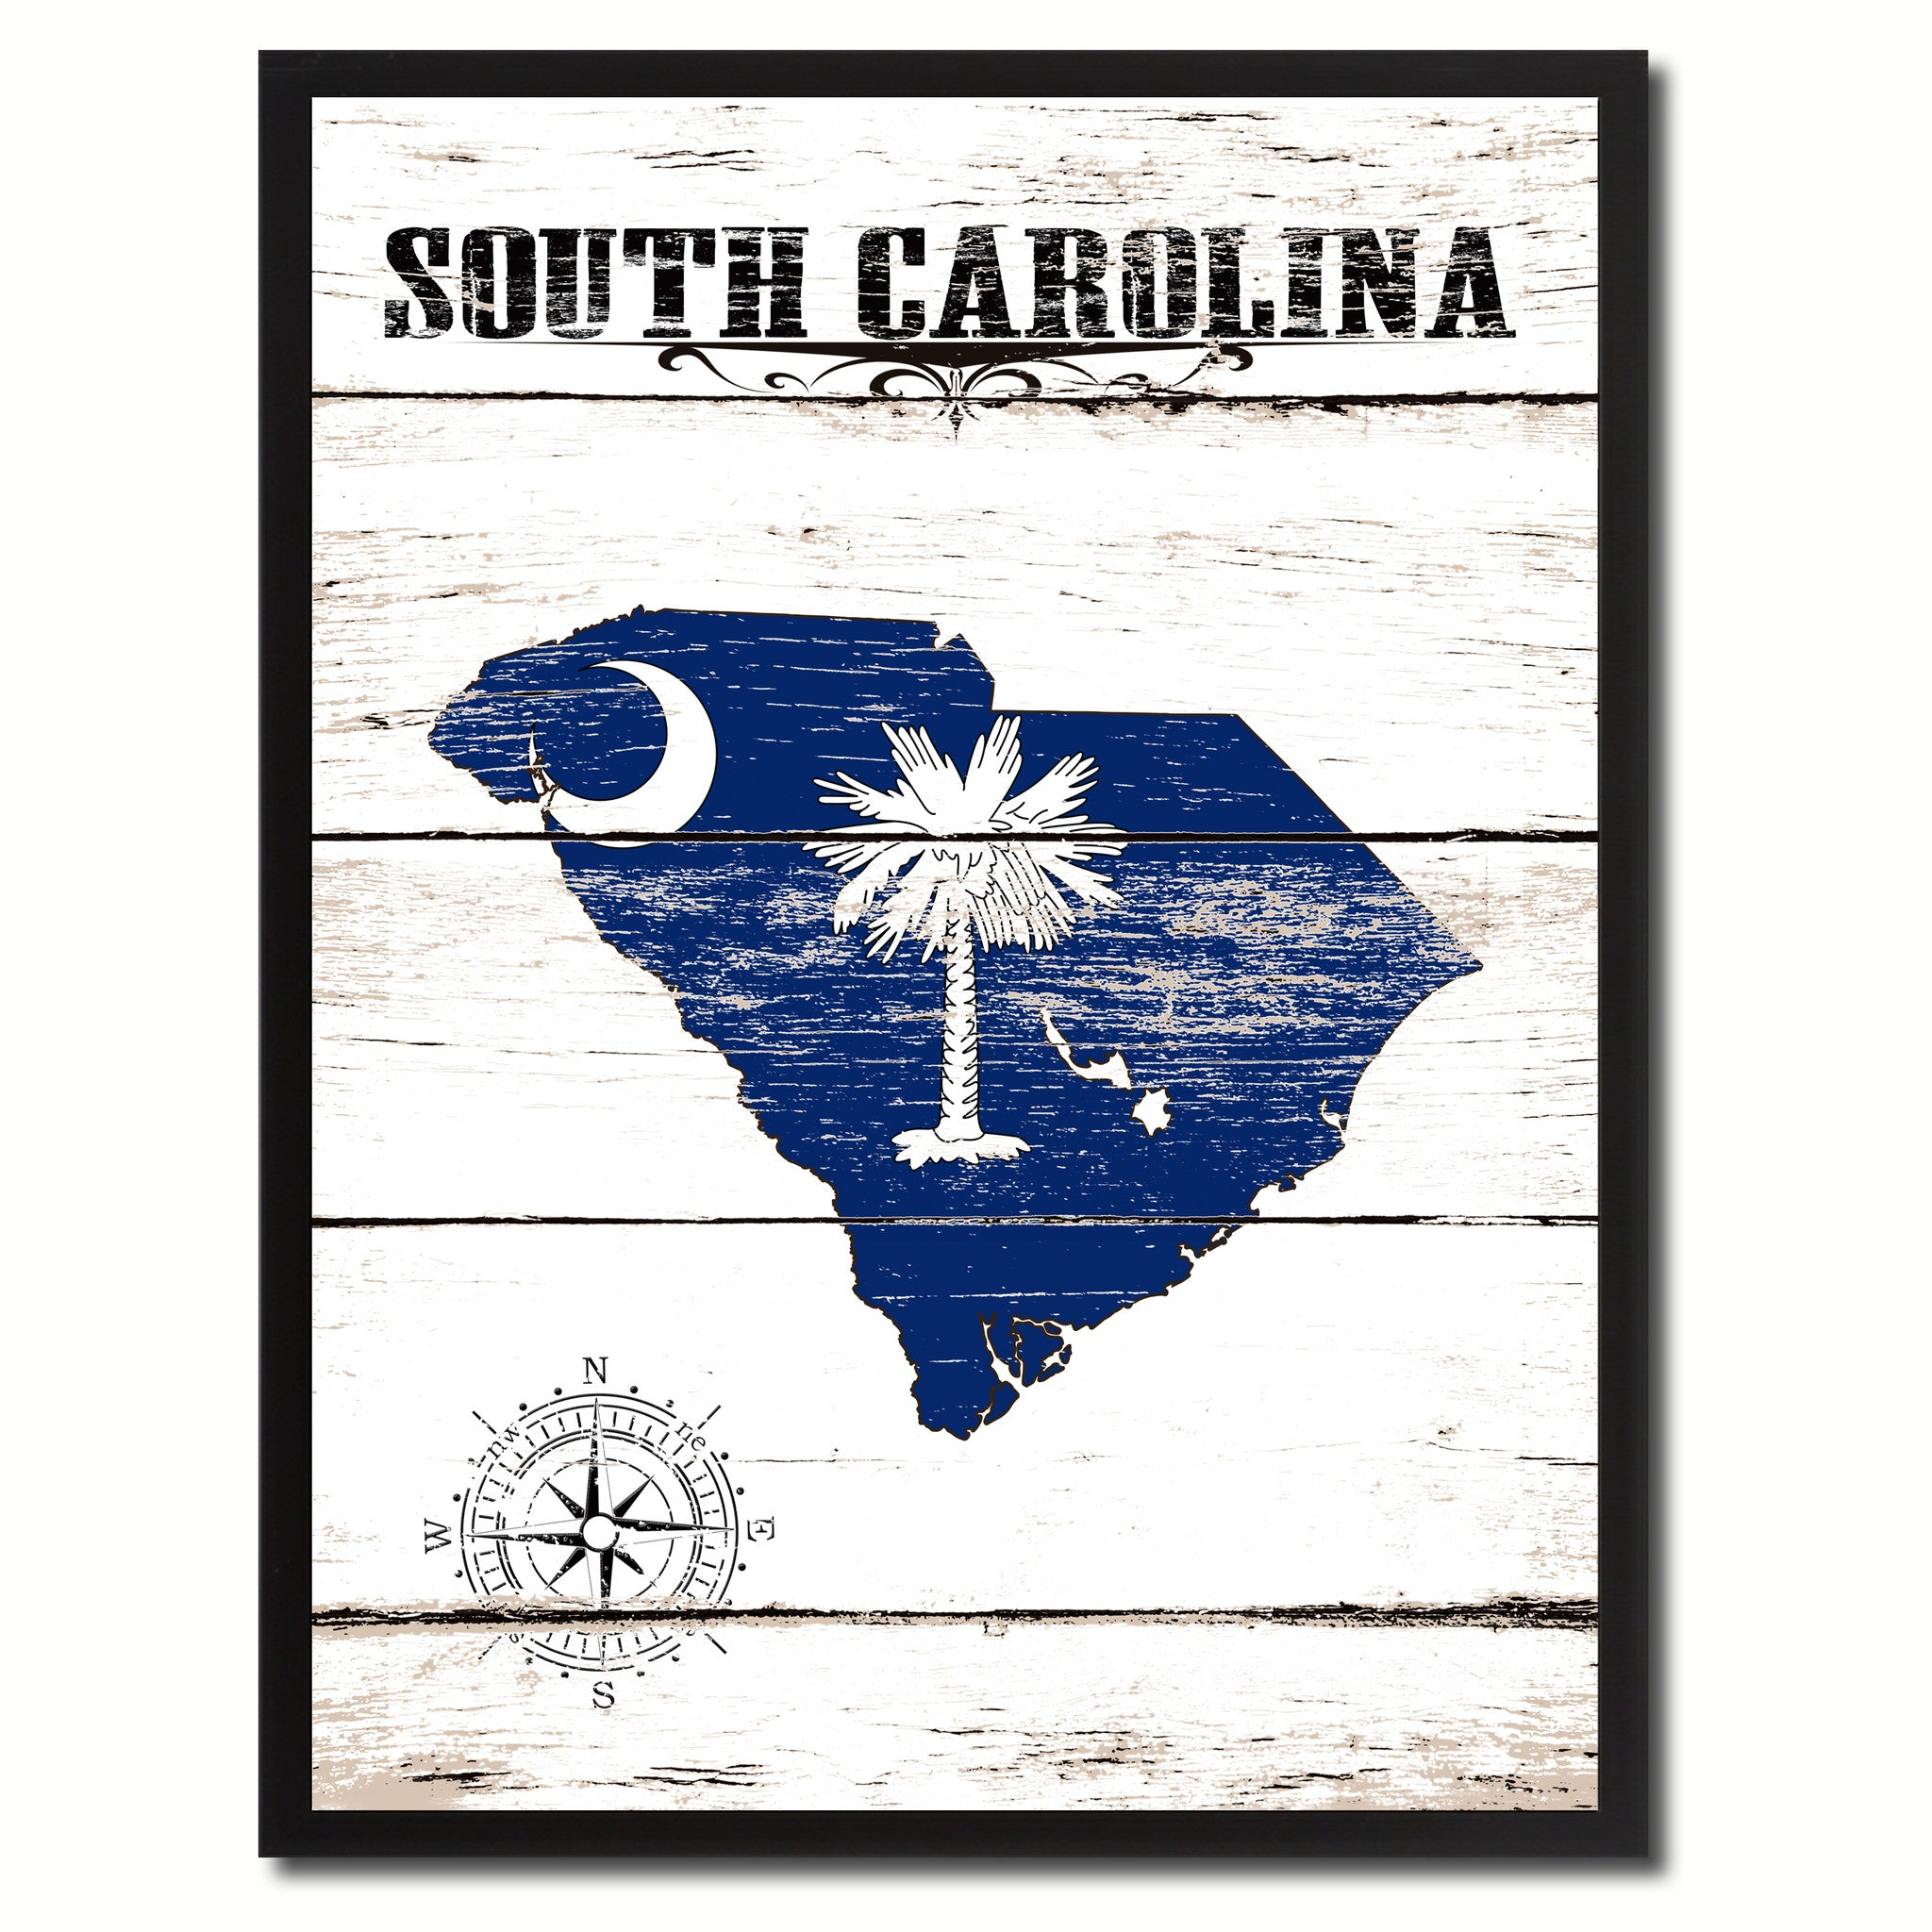 South Carolina State Home Decor Office Wall Art Decoration